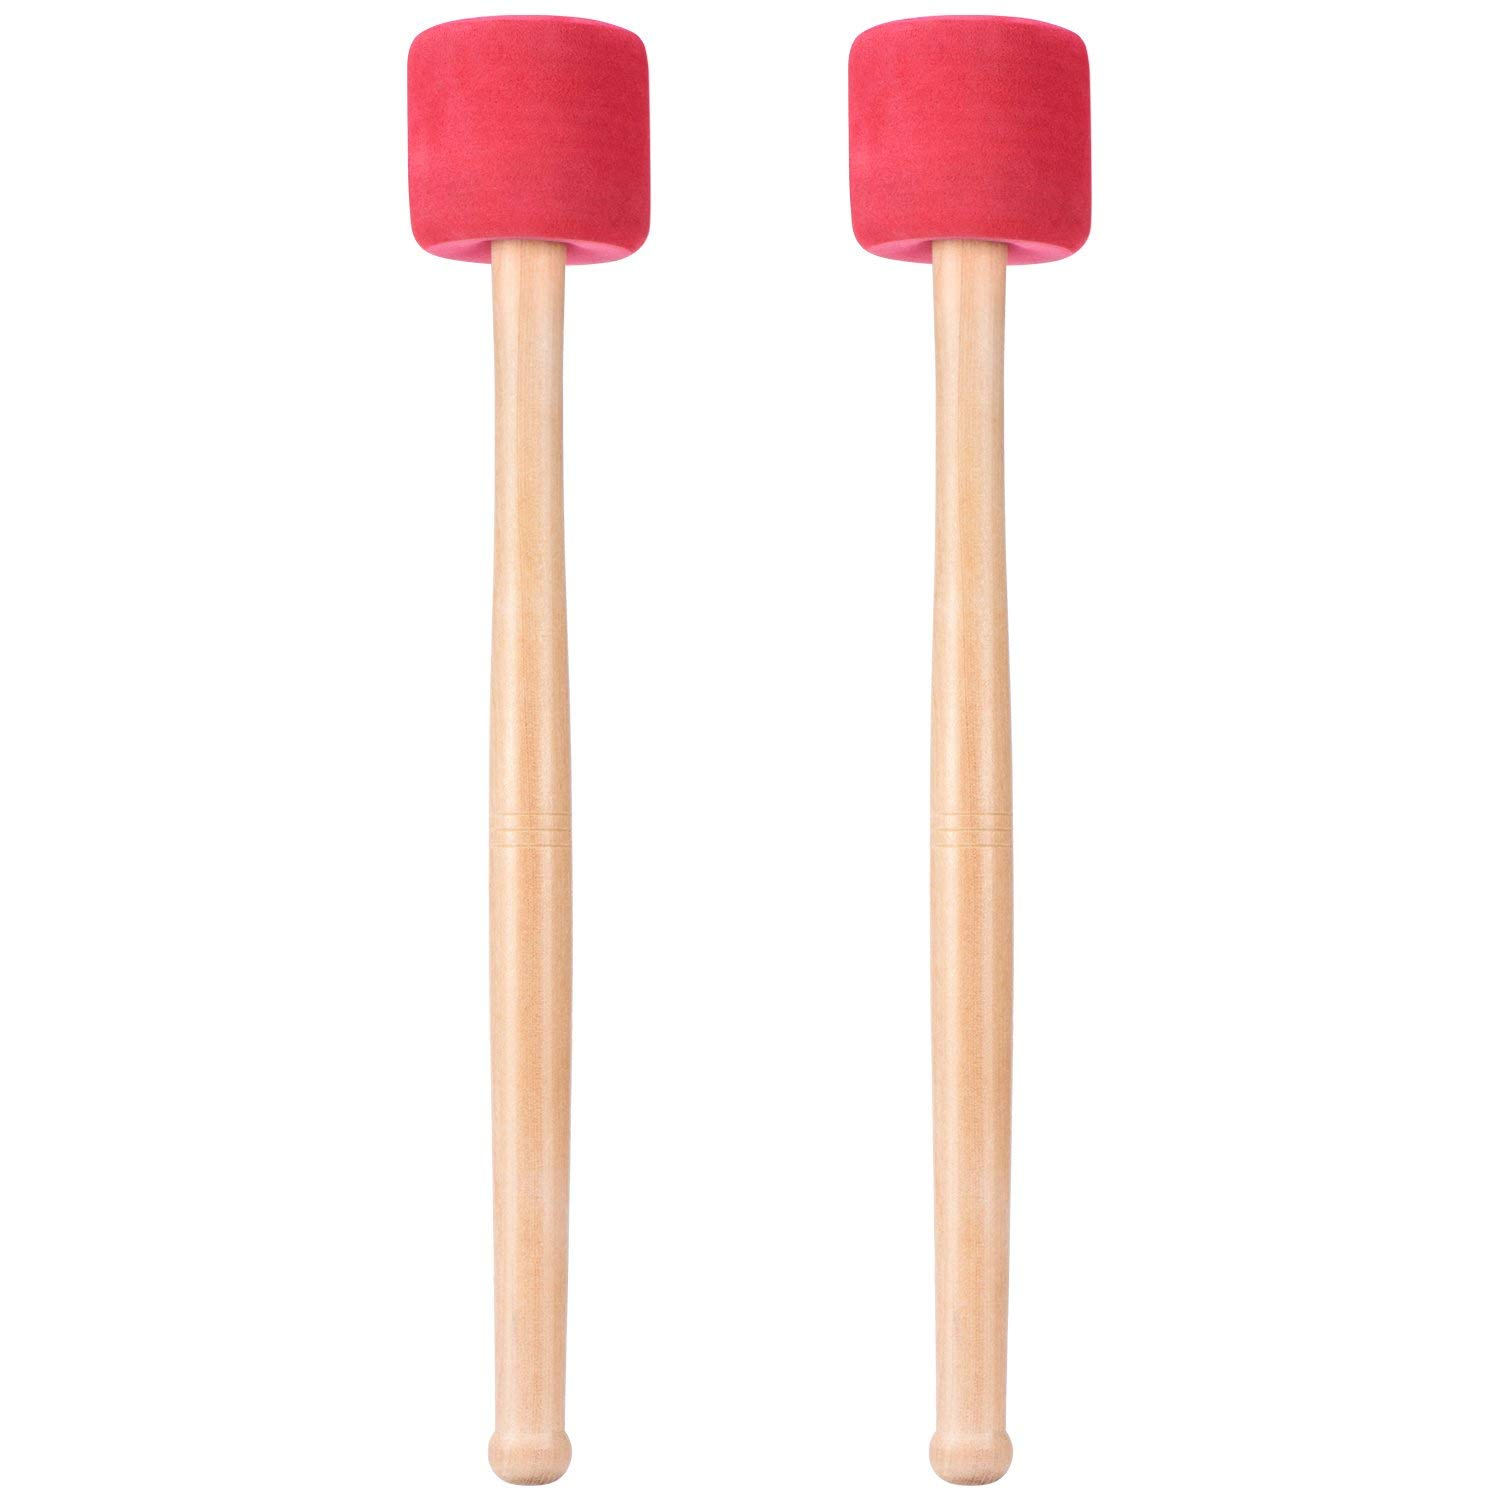 New Bass Drum Mallets Sticks Red Foam Mallet With Wood Handle For Percussion Bass Drum 13 Inch